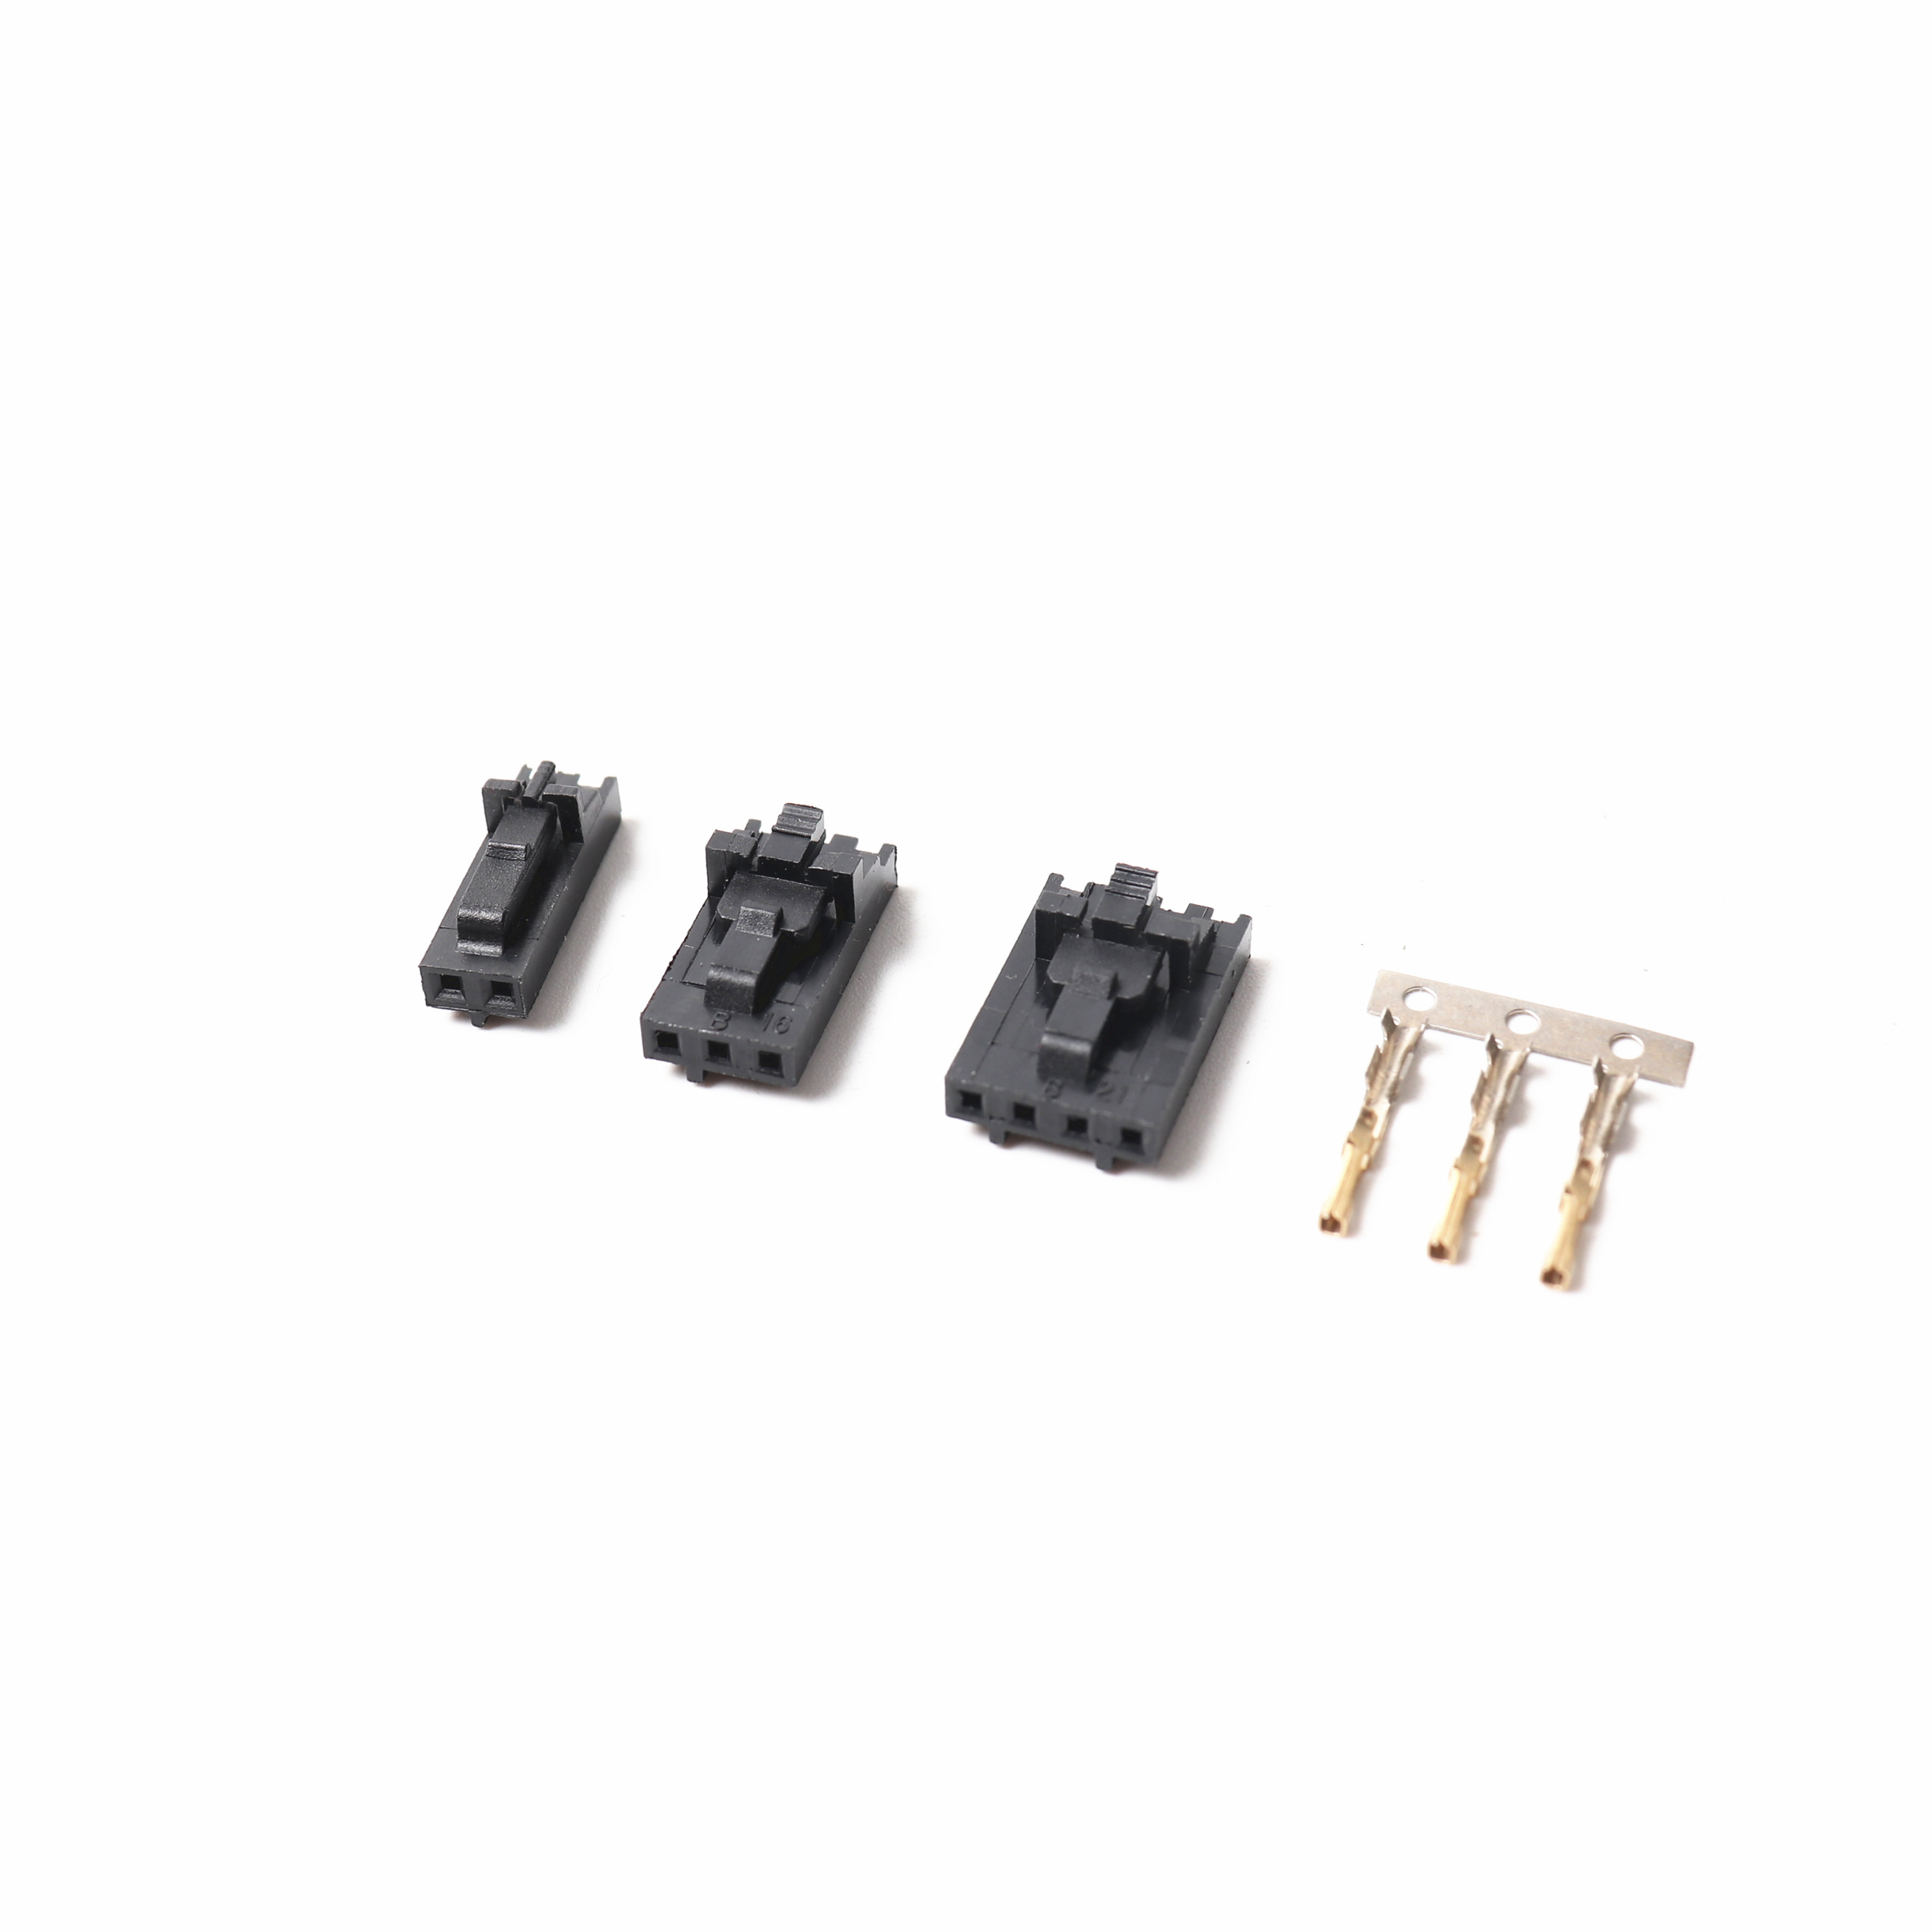 2.54mm 1x2/1x3/1x4 Connector & Positive Latch Housing Kit- 10 Pack For Mini-rambo/Einsy Rambo Boards And Prusa I3 Mk2s/mk3